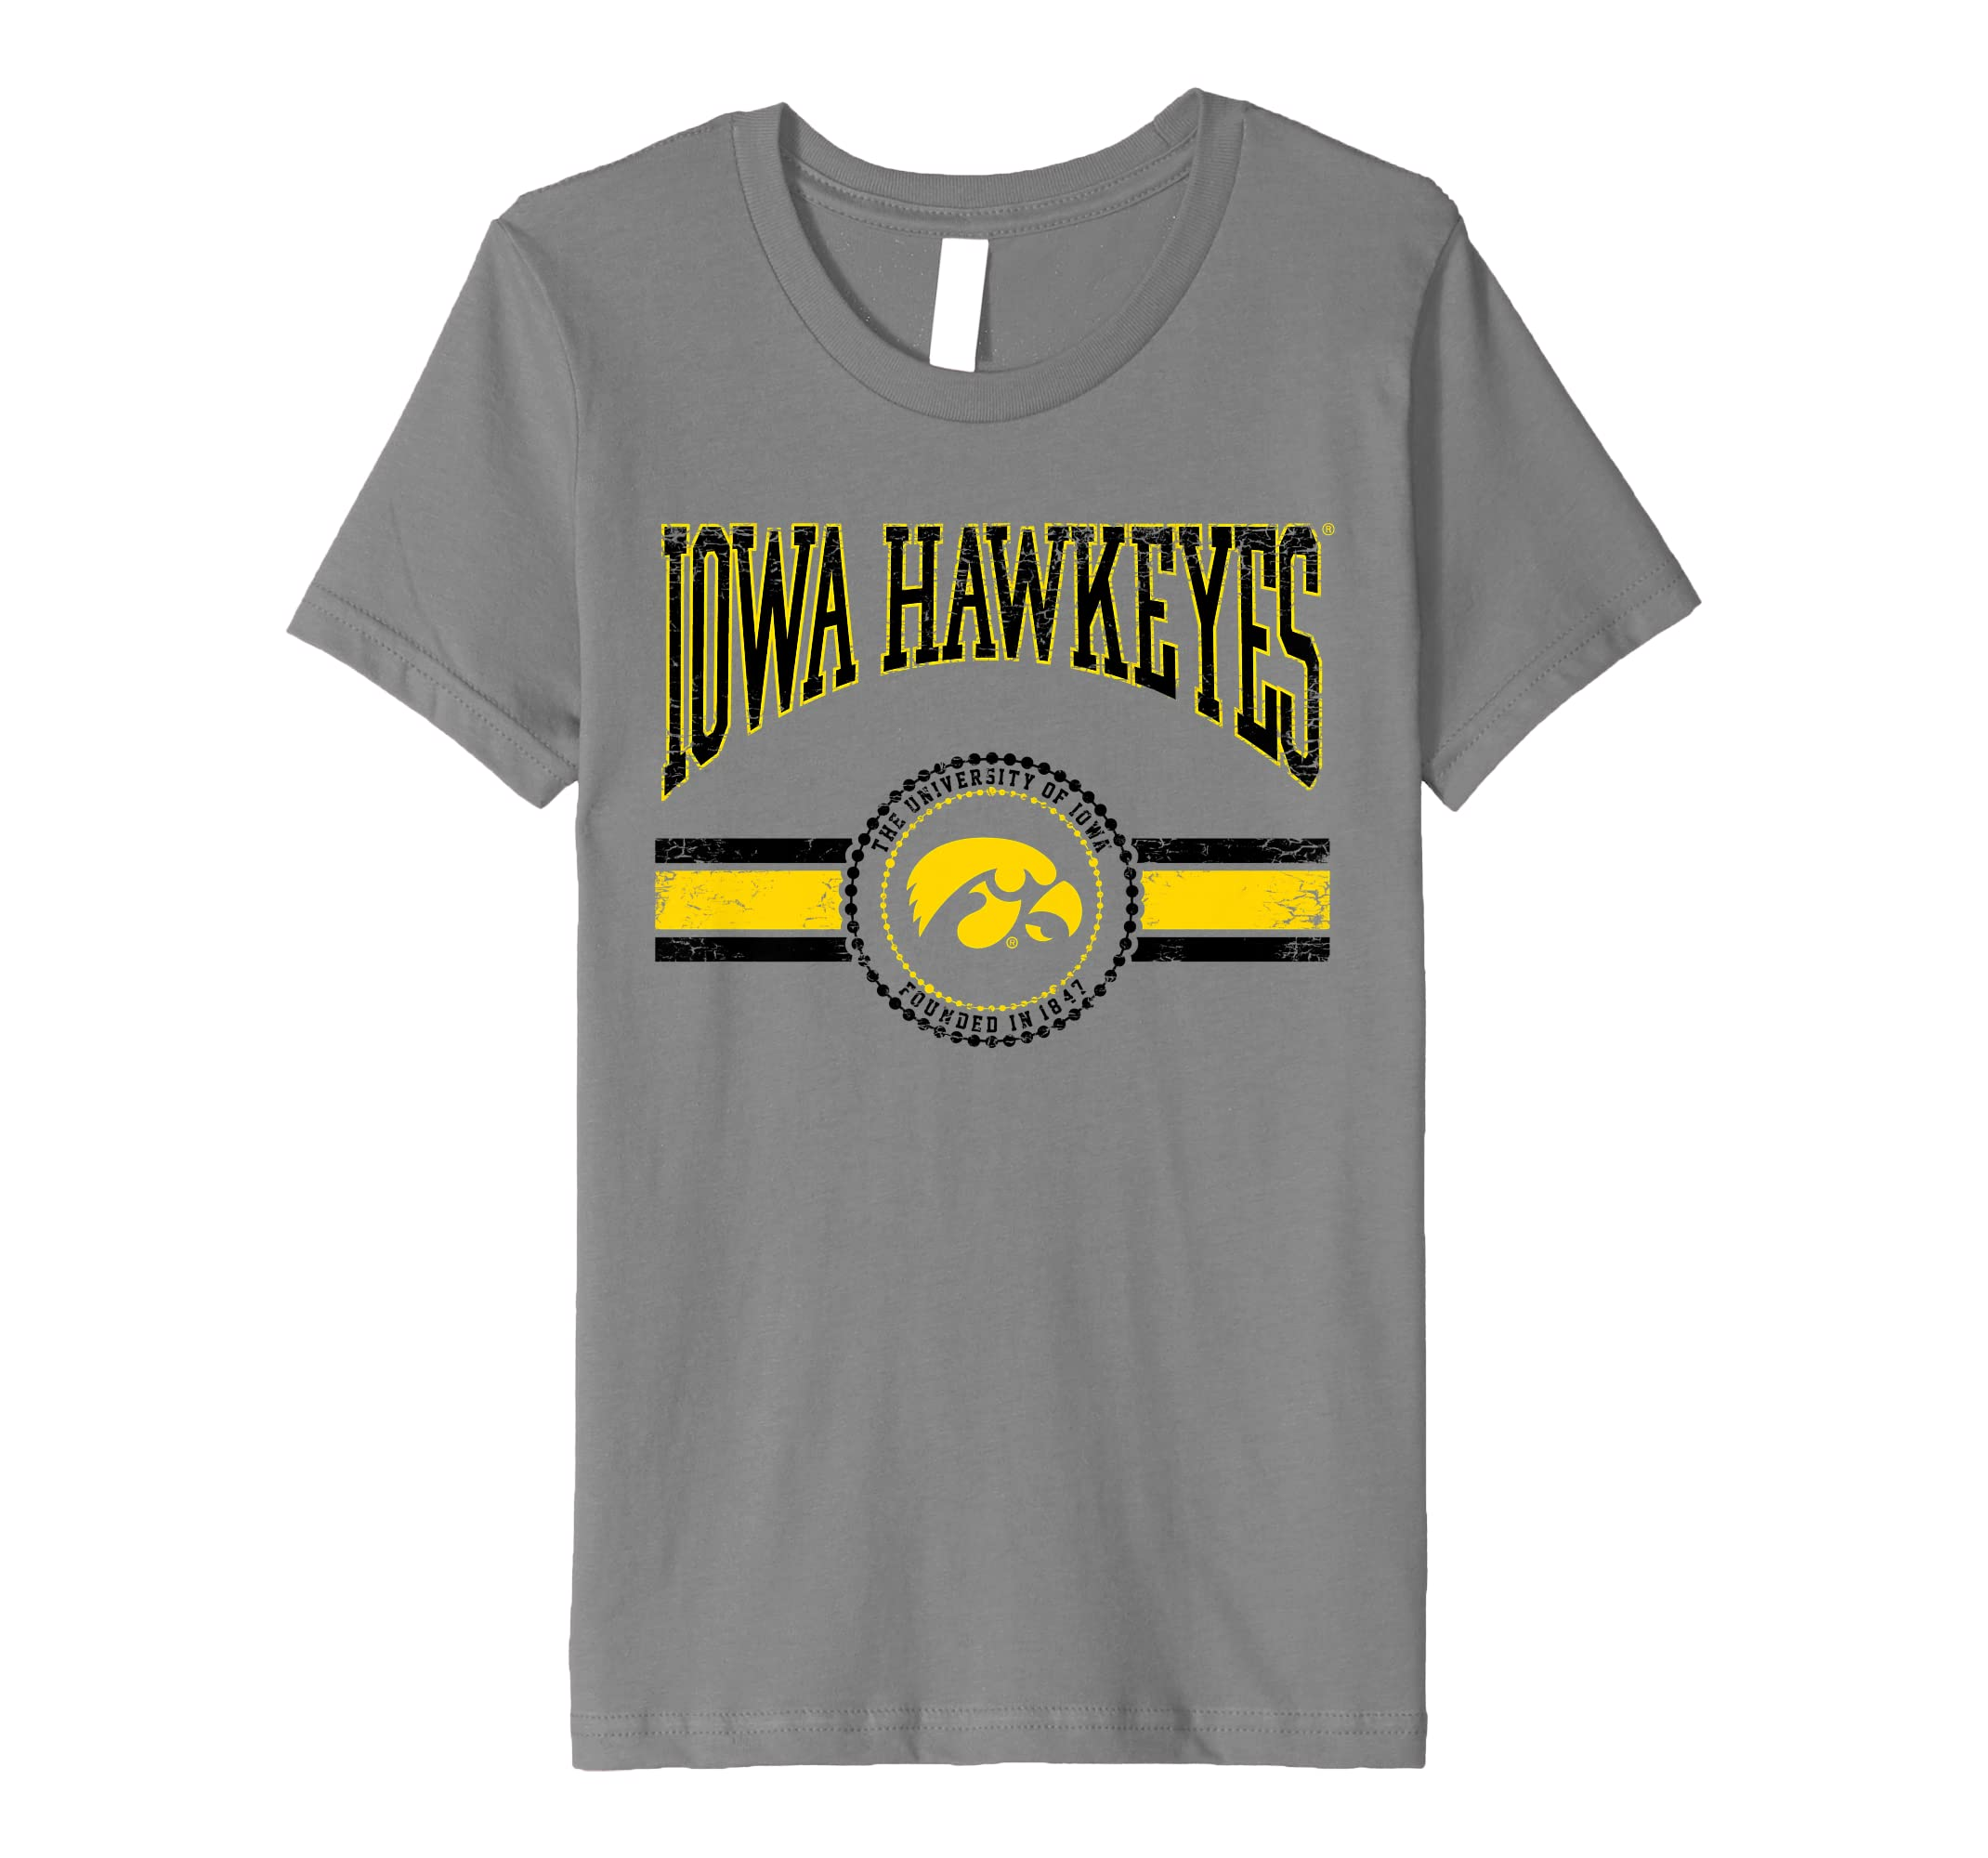 b68004cdf72 University of Iowa Hawkeyes NCAA Women's T-Shirt SC29ui